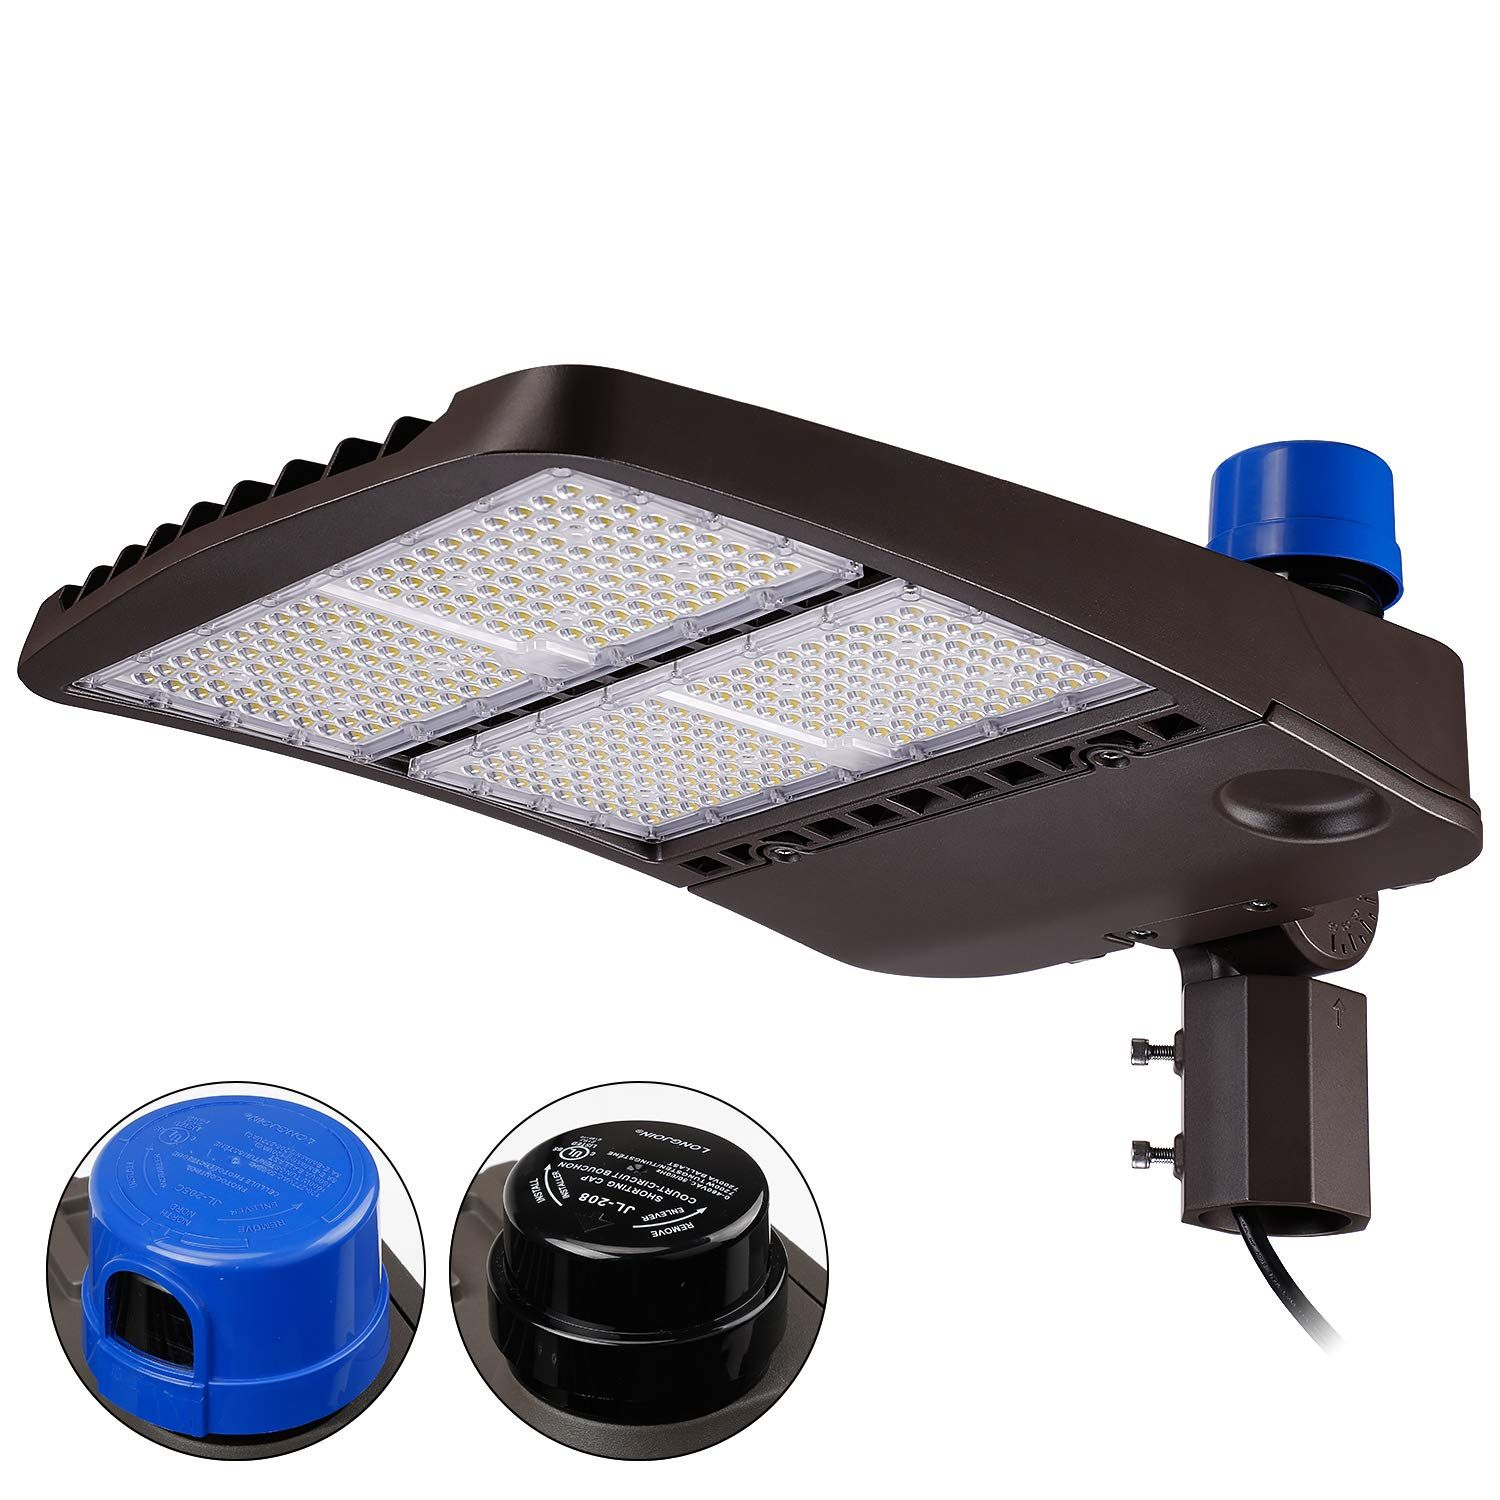 Leonlite 300w Ultra Bright Led Parking Lot Light With Photocell 39 000lm Ip65 Waterproof S Led Parking Lot Lights Diy Outdoor Lighting Outdoor Lighting Design